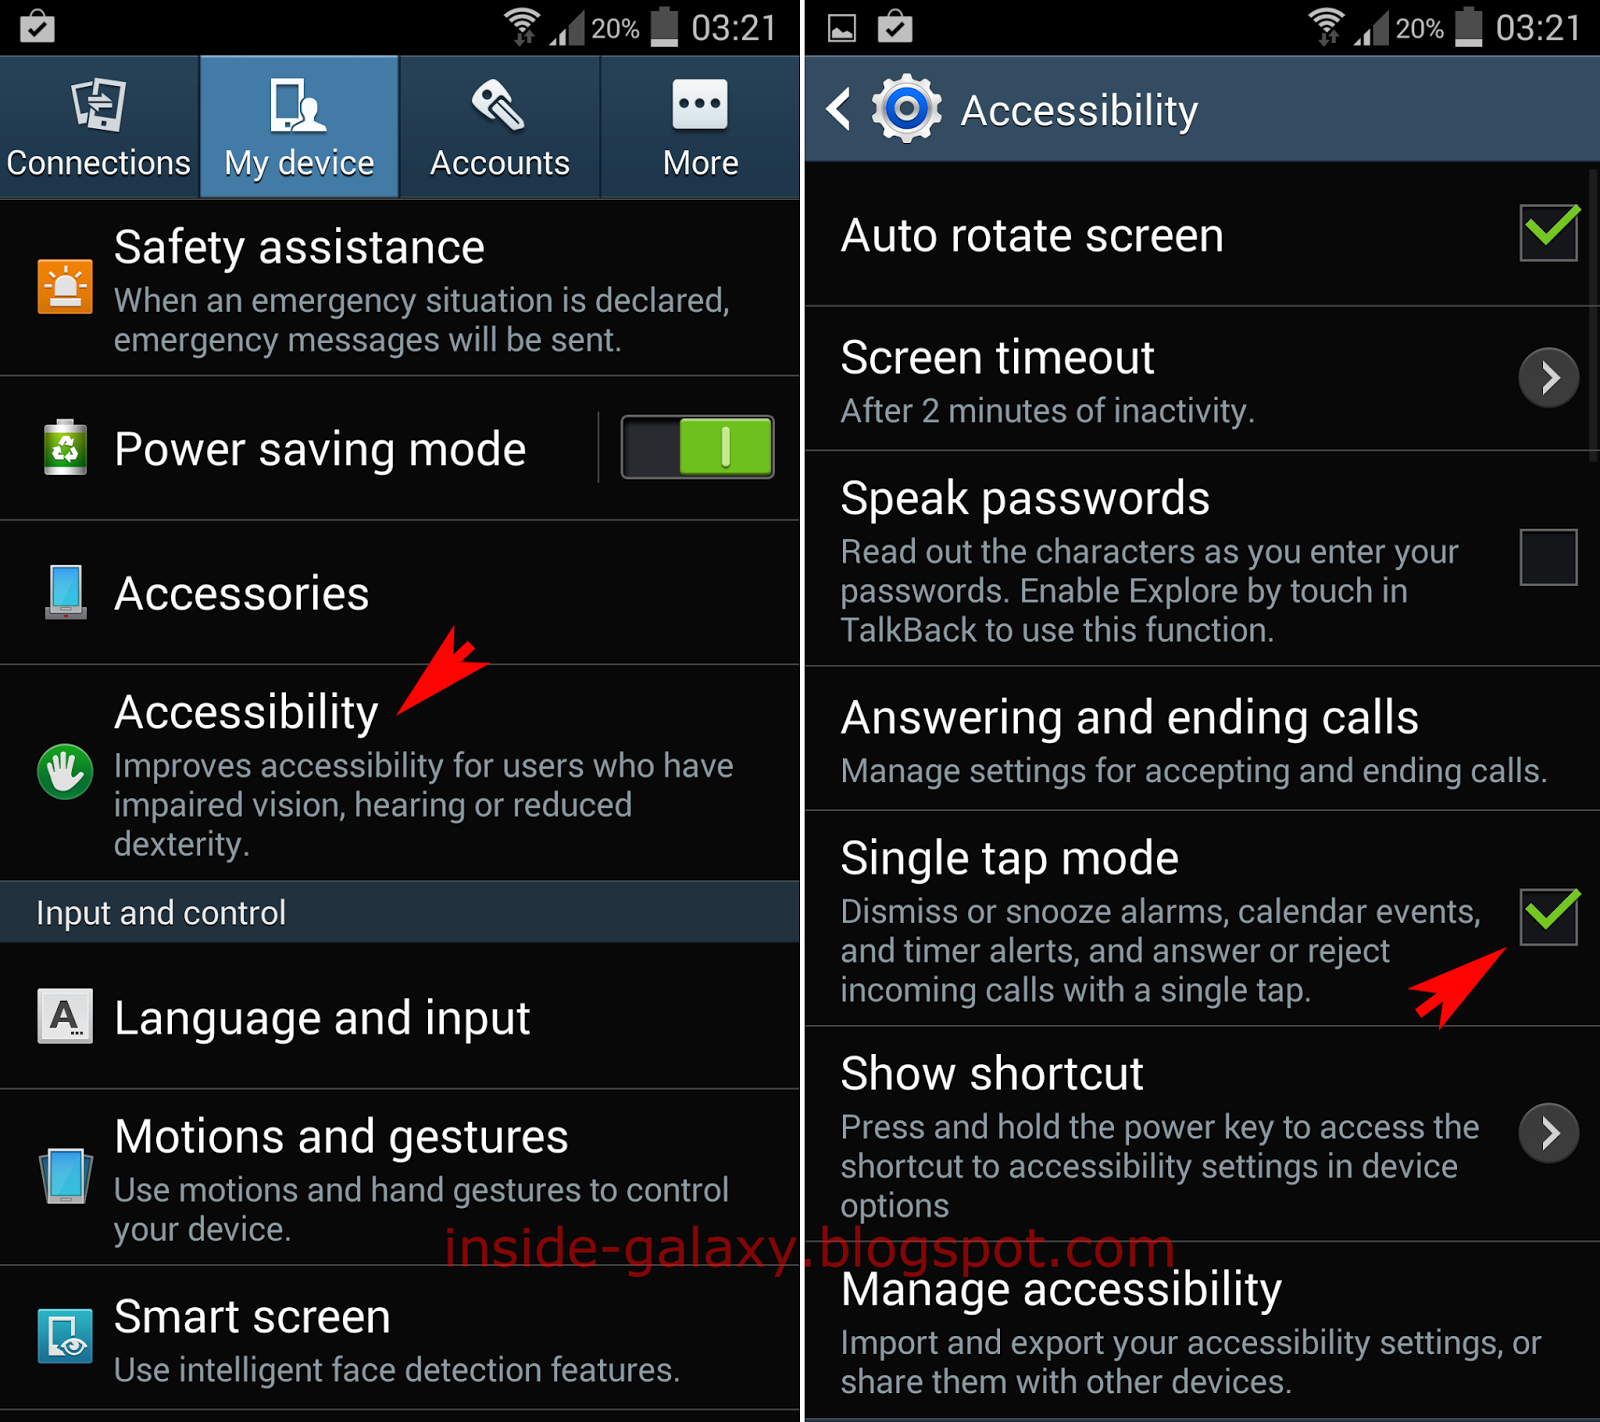 Samsung Galaxy S4: How To Enable And Use Single Tap Mode